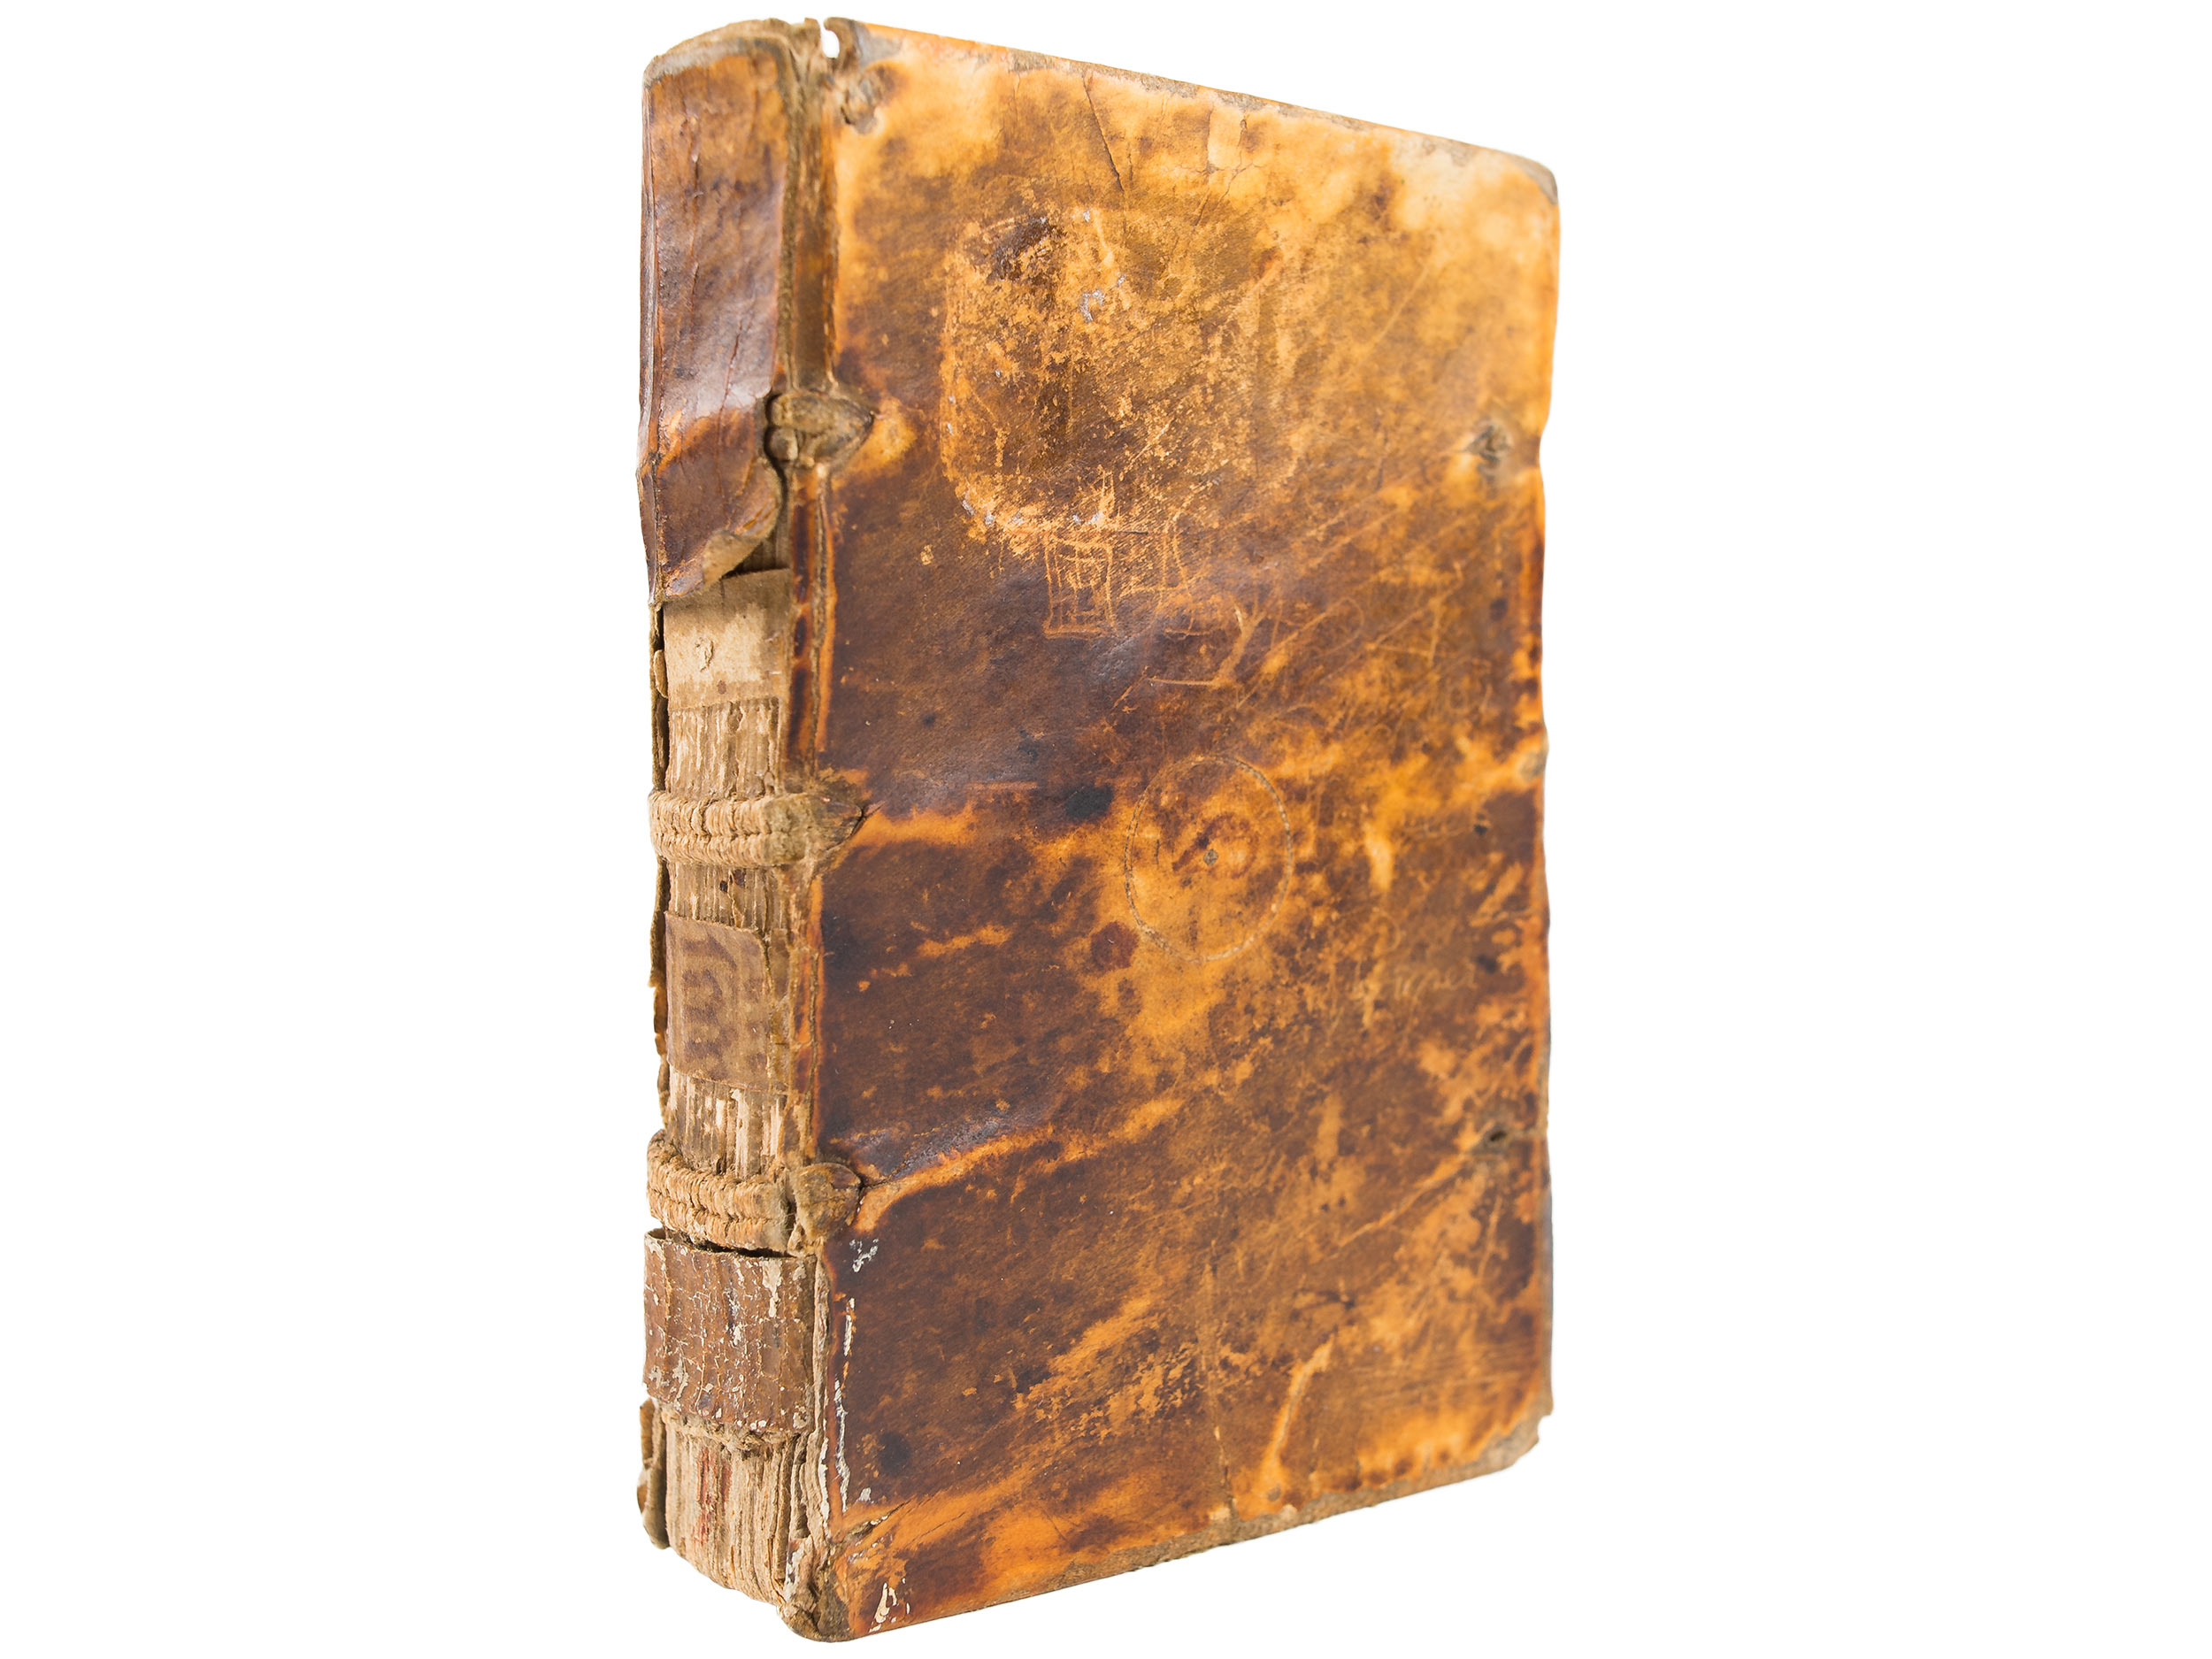 Radcliffe's first antiquarian book, 1599